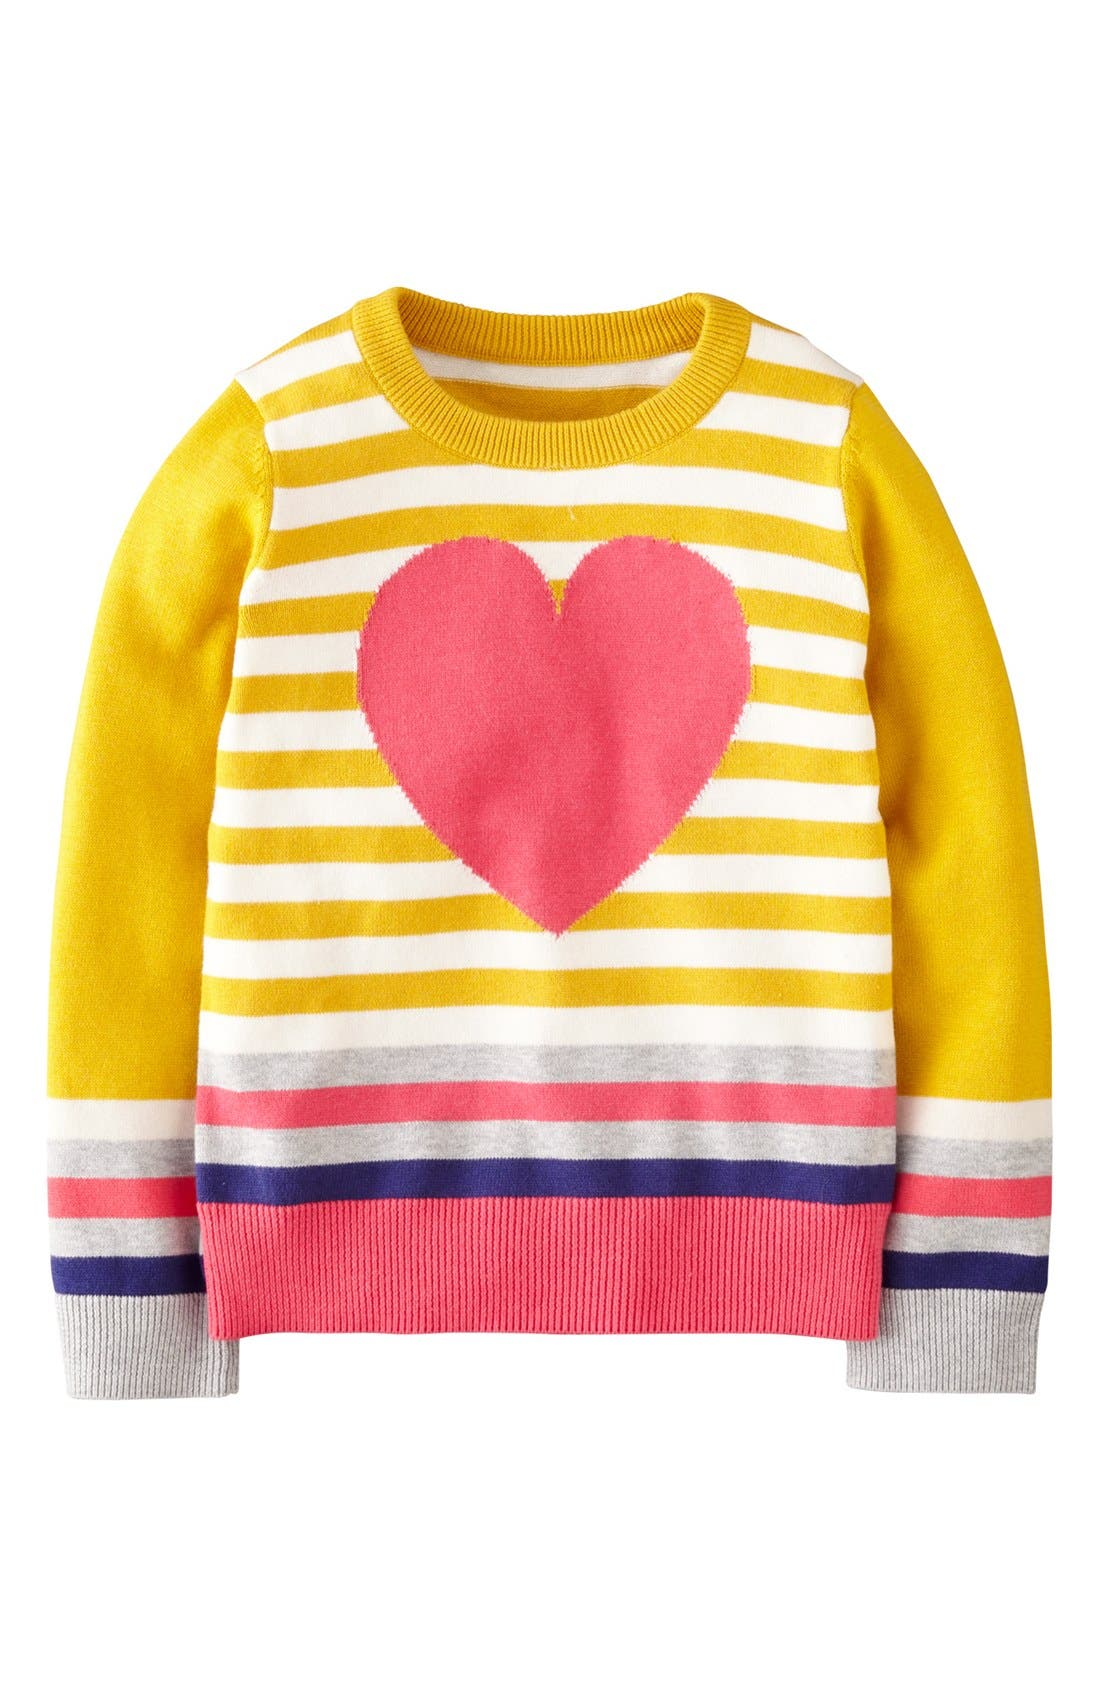 Main Image - Mini Boden Intarsia Sweater (Toddler Girls, Little Girls & Big Girls)